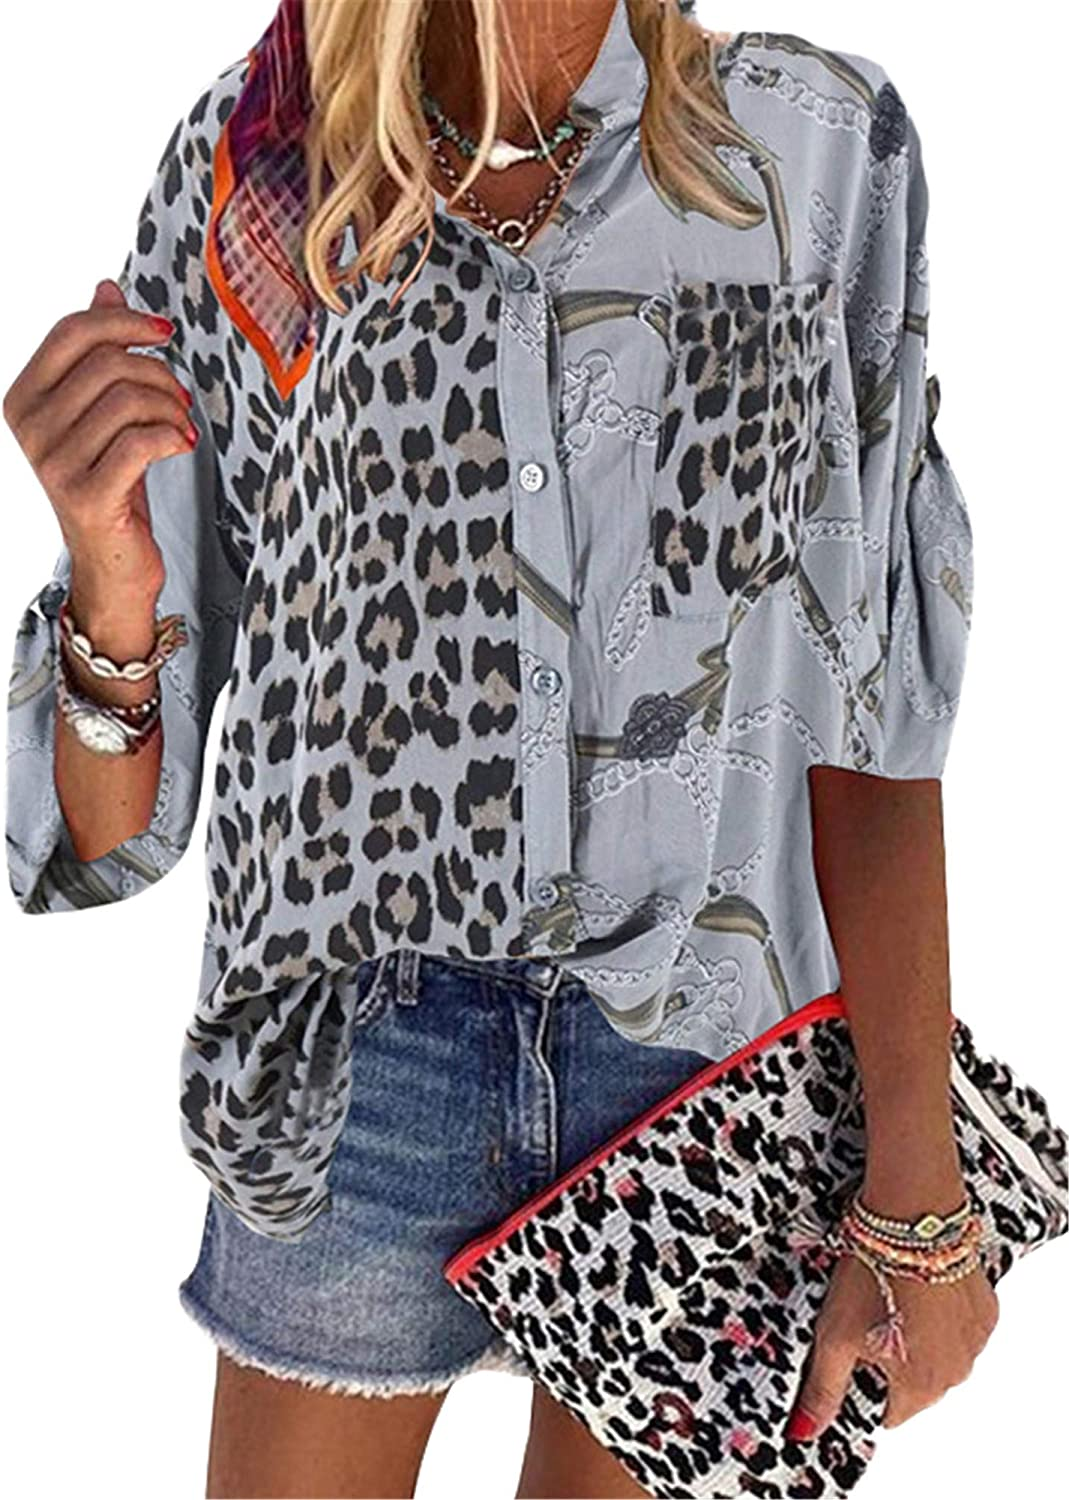 Andongnywell Women's Casual Leopard Print Tops Blouse V Neck Half Sleeve Button Down Shirt with Pocket